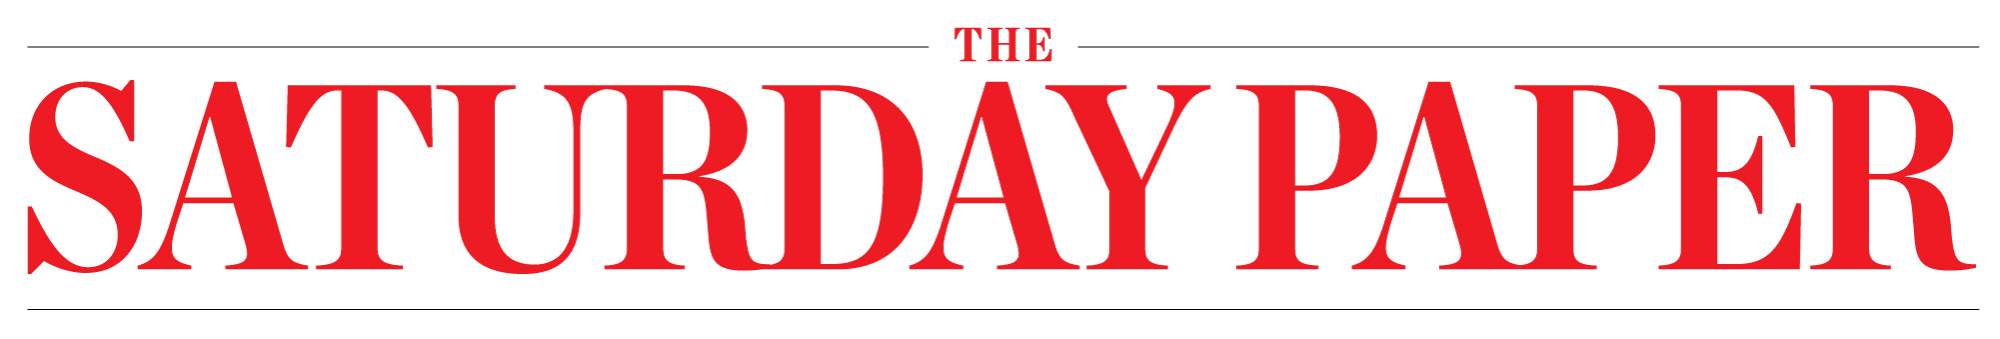 Saturday Paper logo